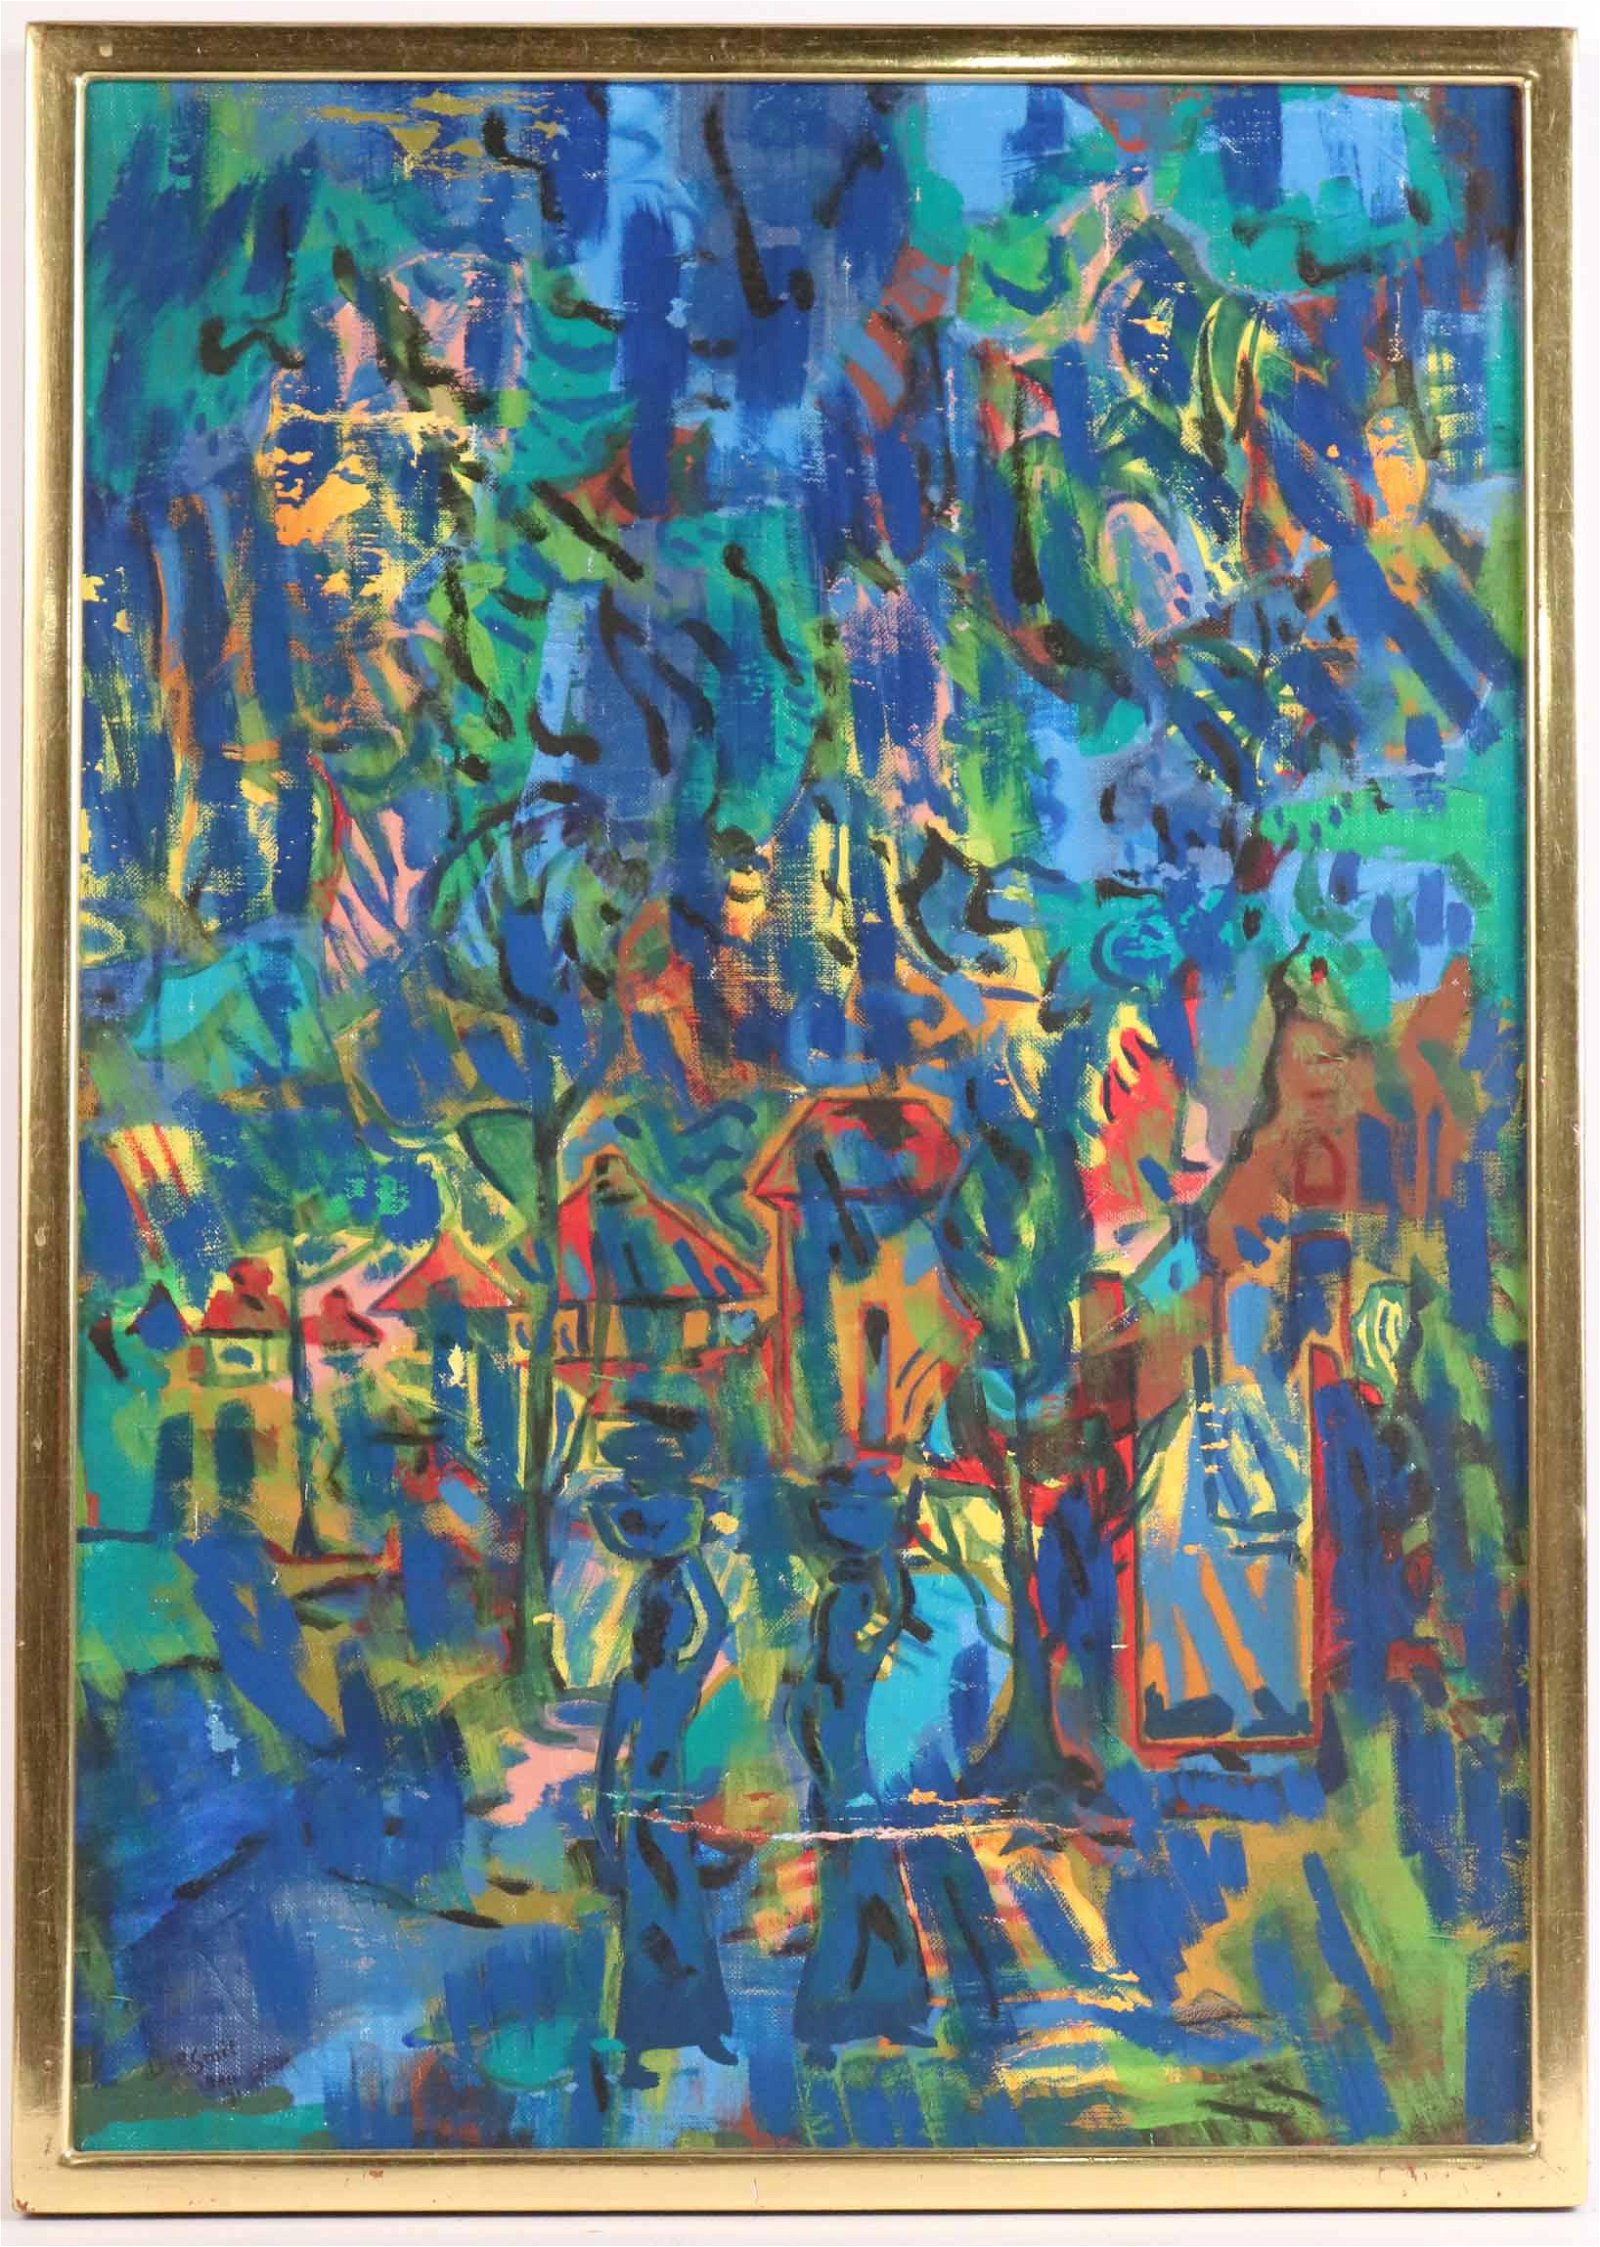 Oil on Canvas, Arie Smit, Bali Abstract in Blues